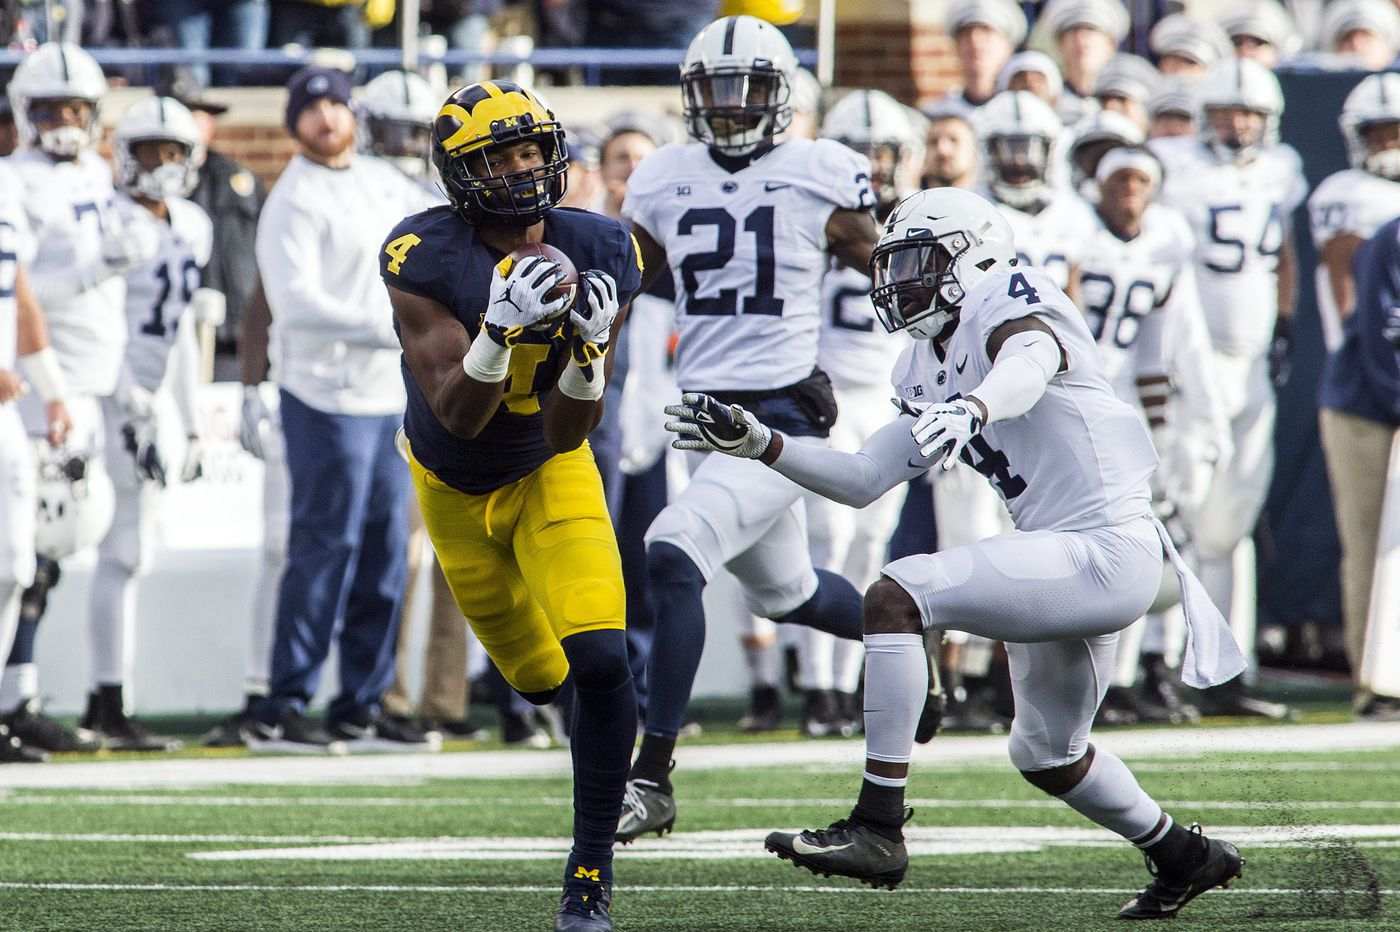 Penn State gets blown out in Michigan again, suffers 42-7 loss